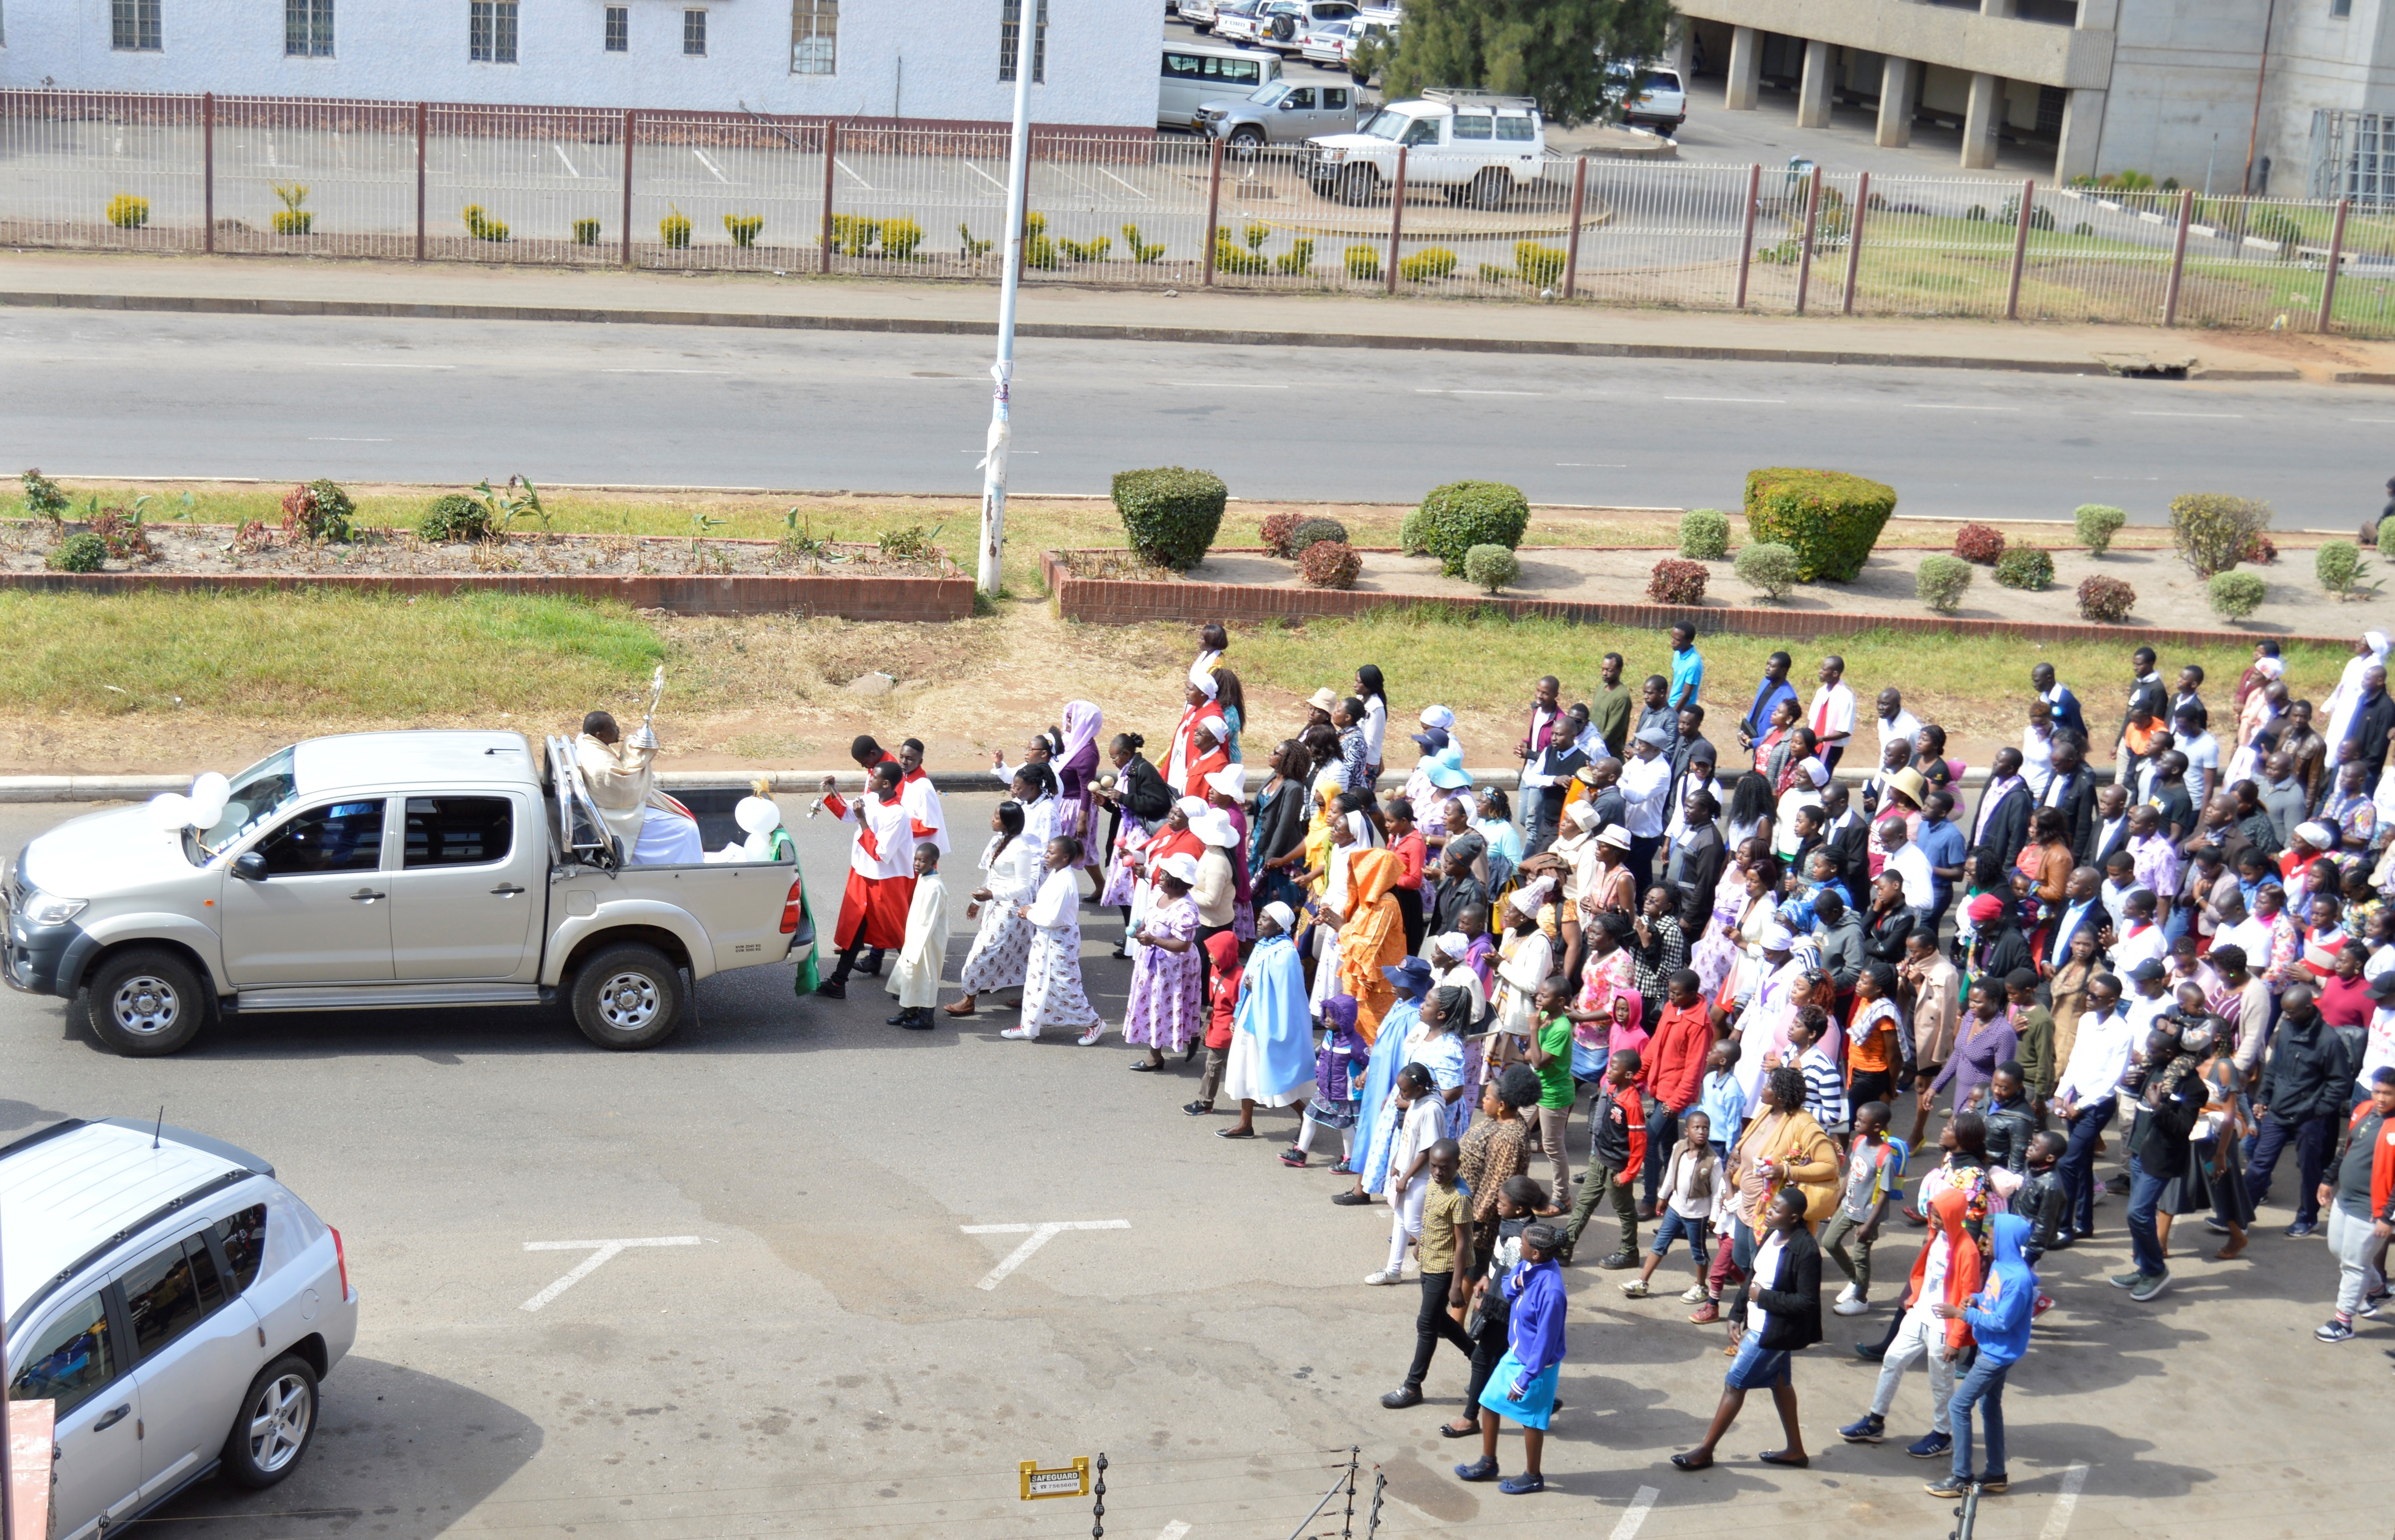 Fr. Kennedy Muguti lifts a monstrance with the blessed sacrament in a procession along Simon Muzenda Street in Harare.